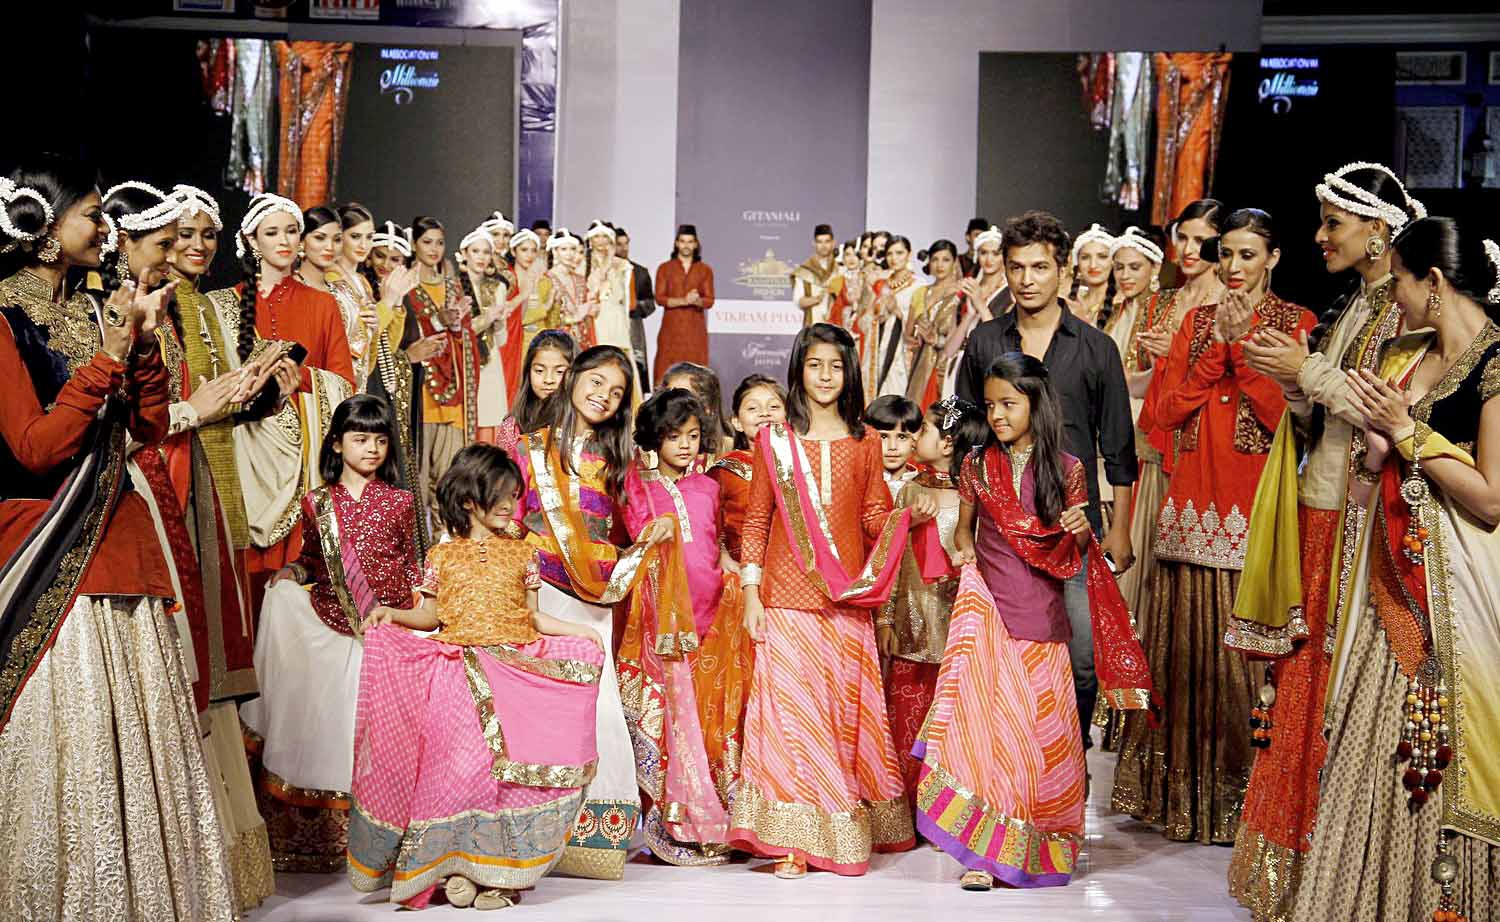 Vikram Phadnis Collection at Rajasthan Fashion Week 2013 ...